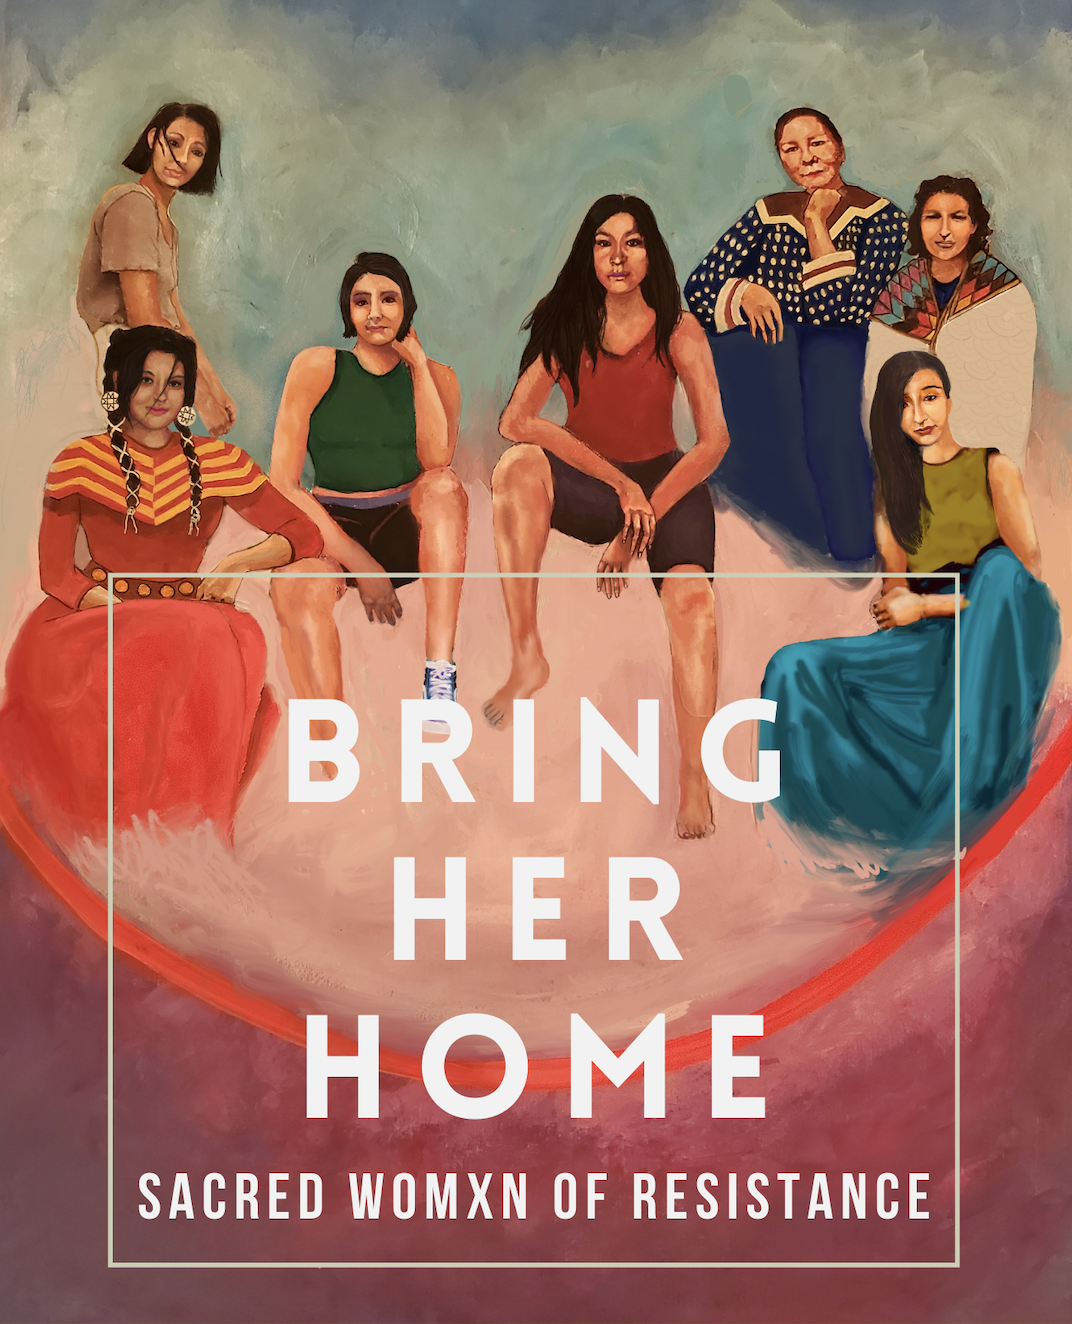 BRING HER HOME: SACRED WOMXN OF RESISTANCE